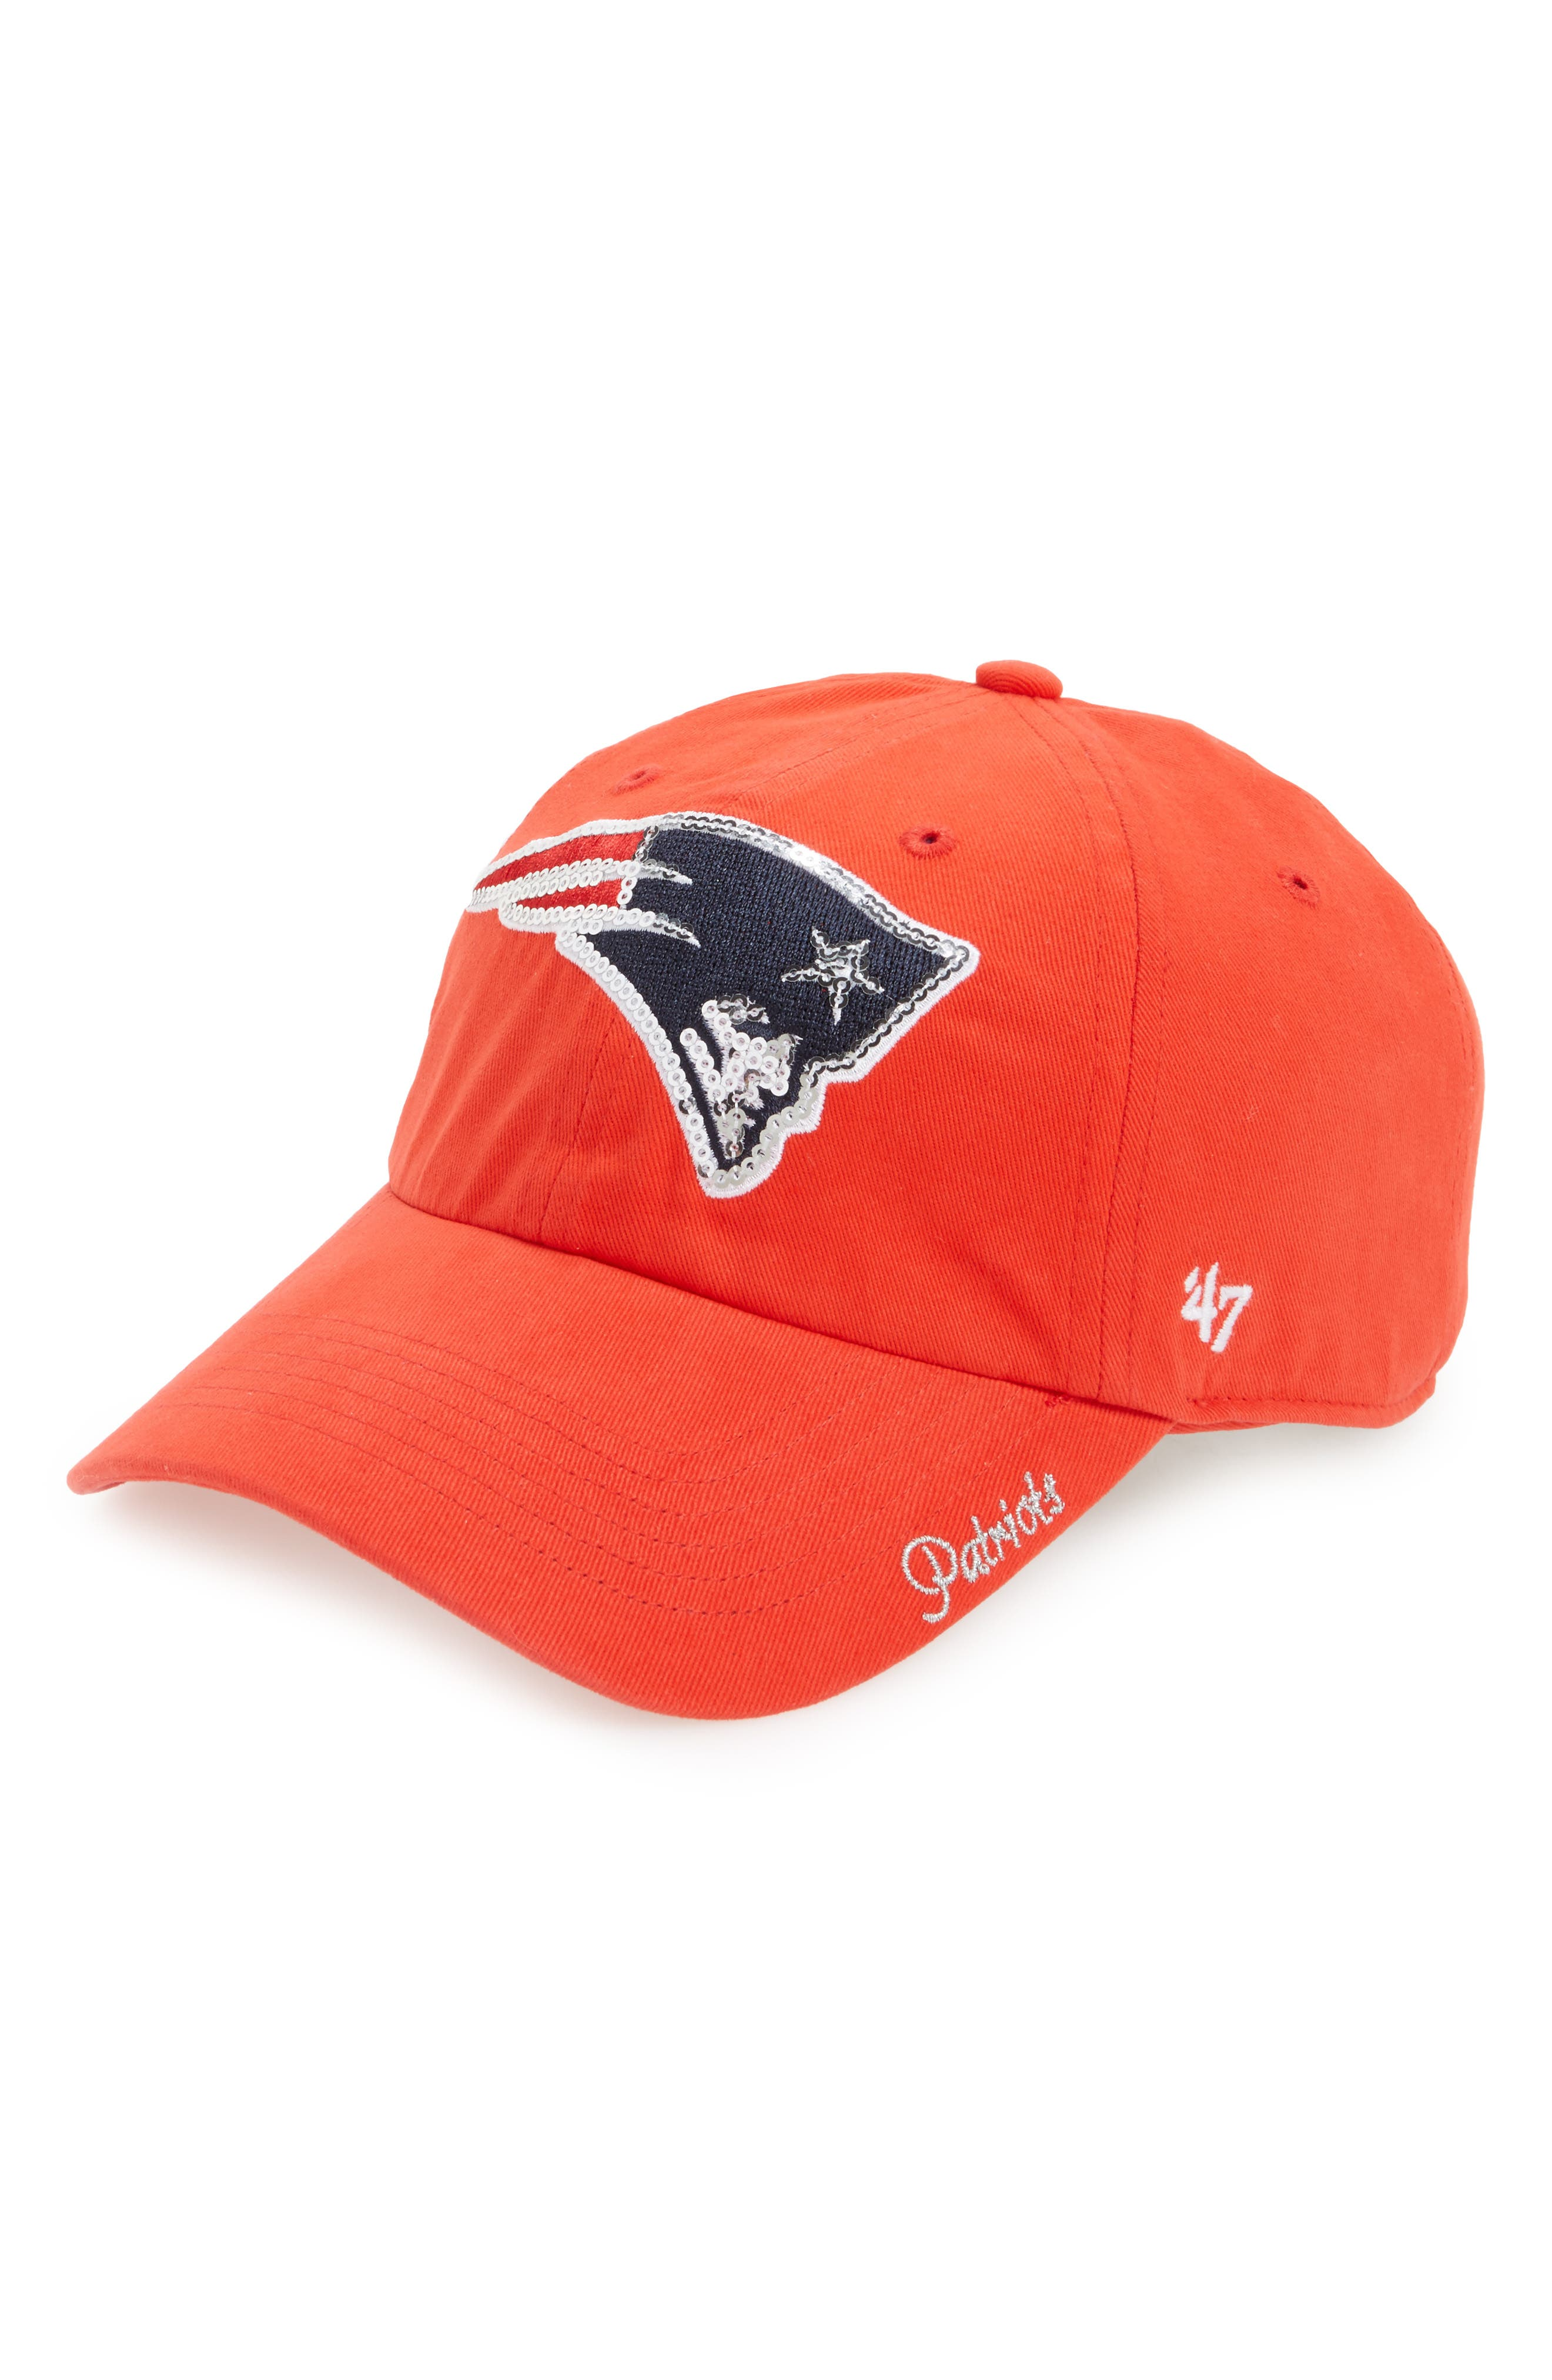 New England Patriots Sparkle Cap,                         Main,                         color, 600